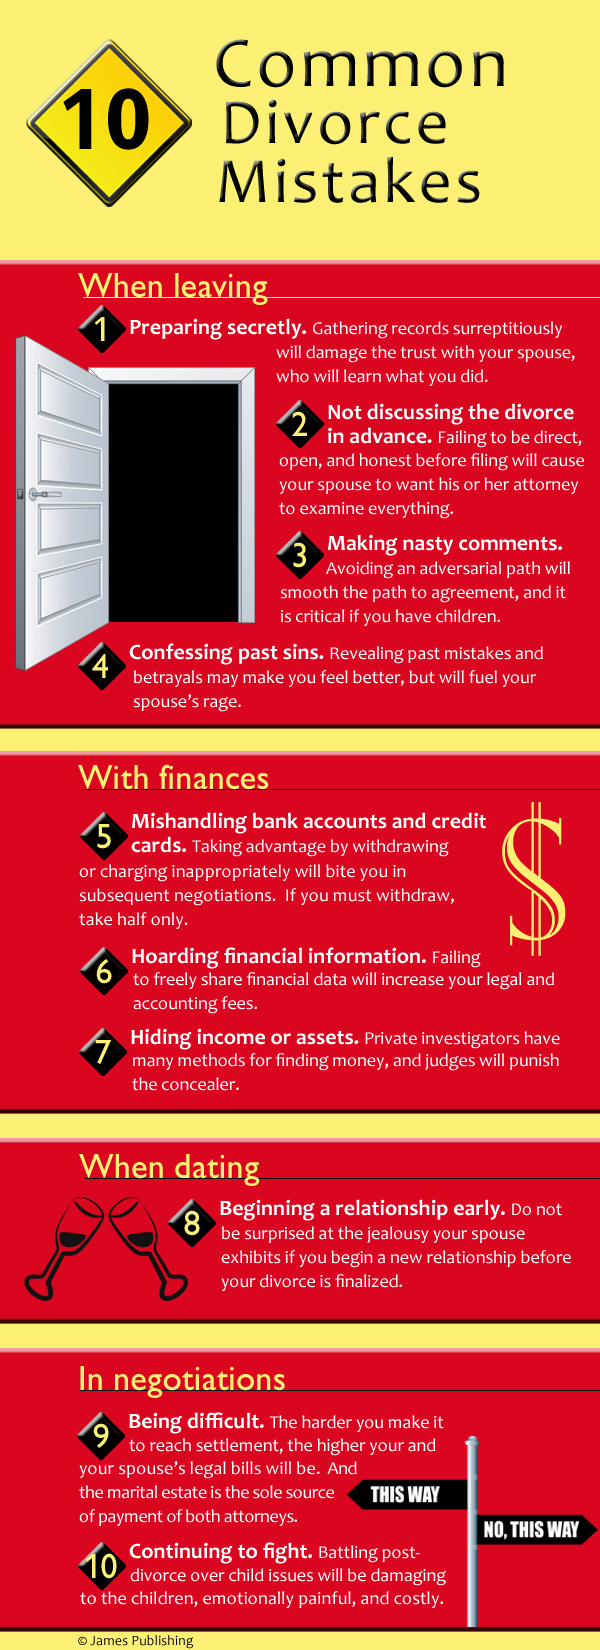 Austin Family Lawyers - Common Divorce Mistakes Infographic